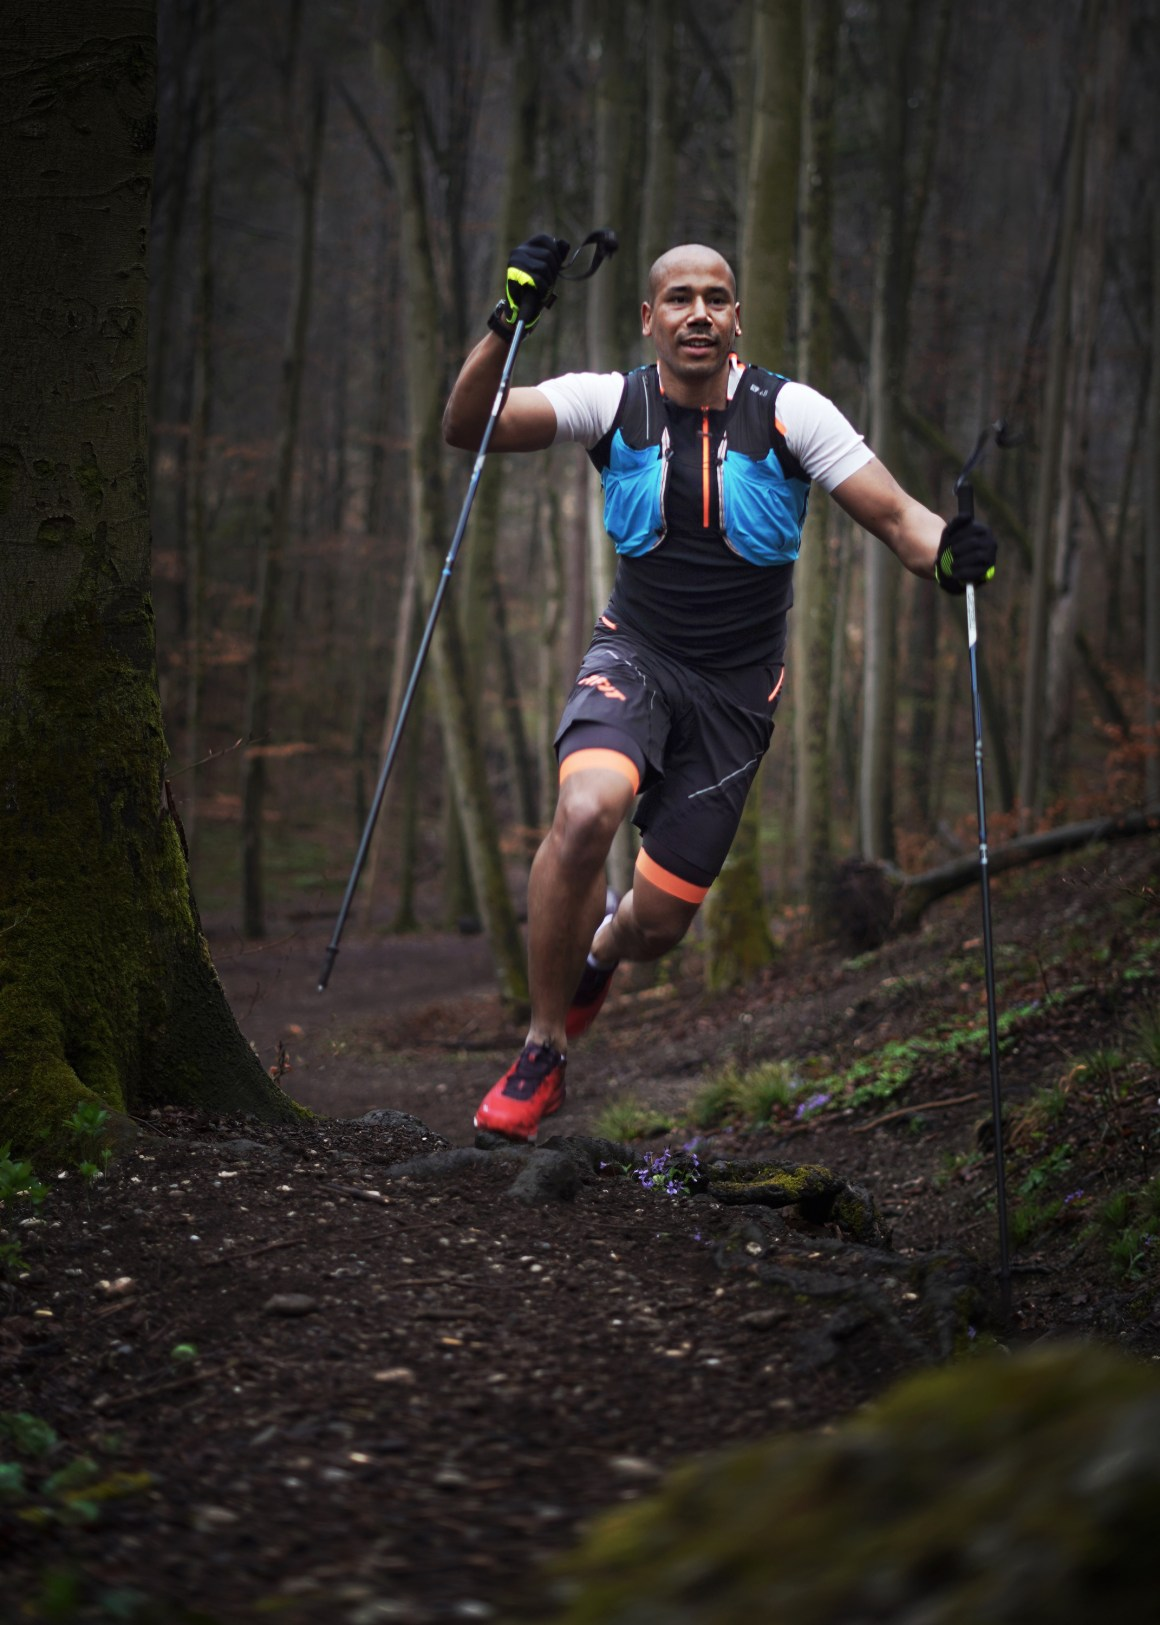 Leo im Trail - Action Shooting Trailrunning